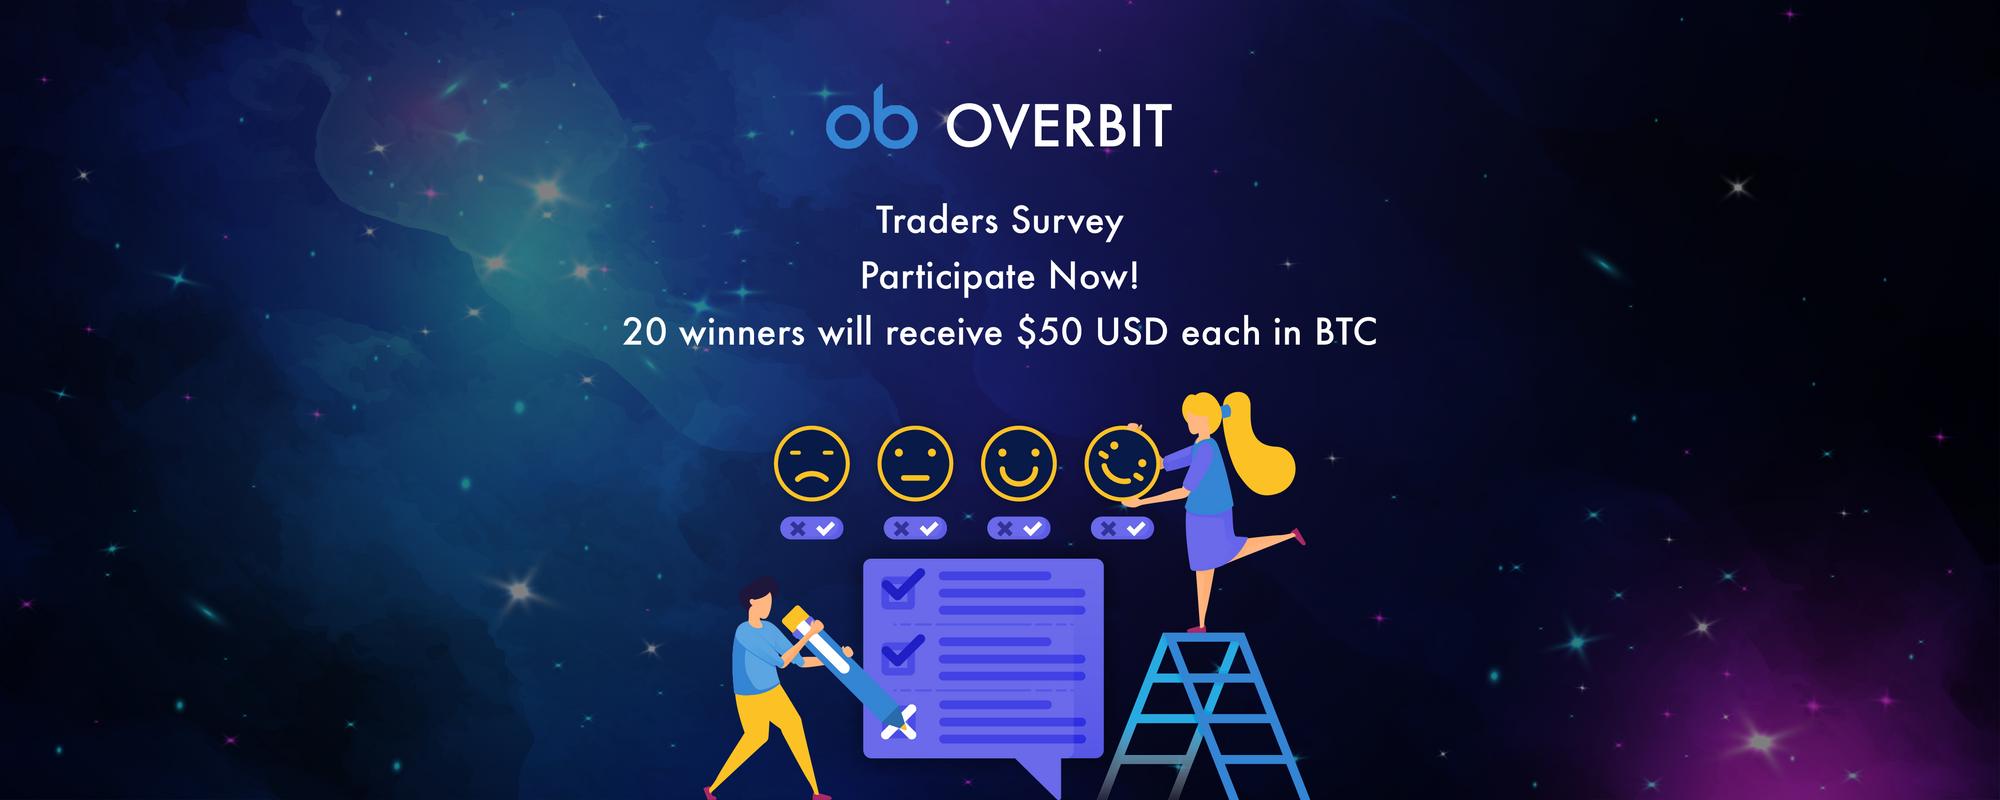 Overbit Traders' Survey Launch